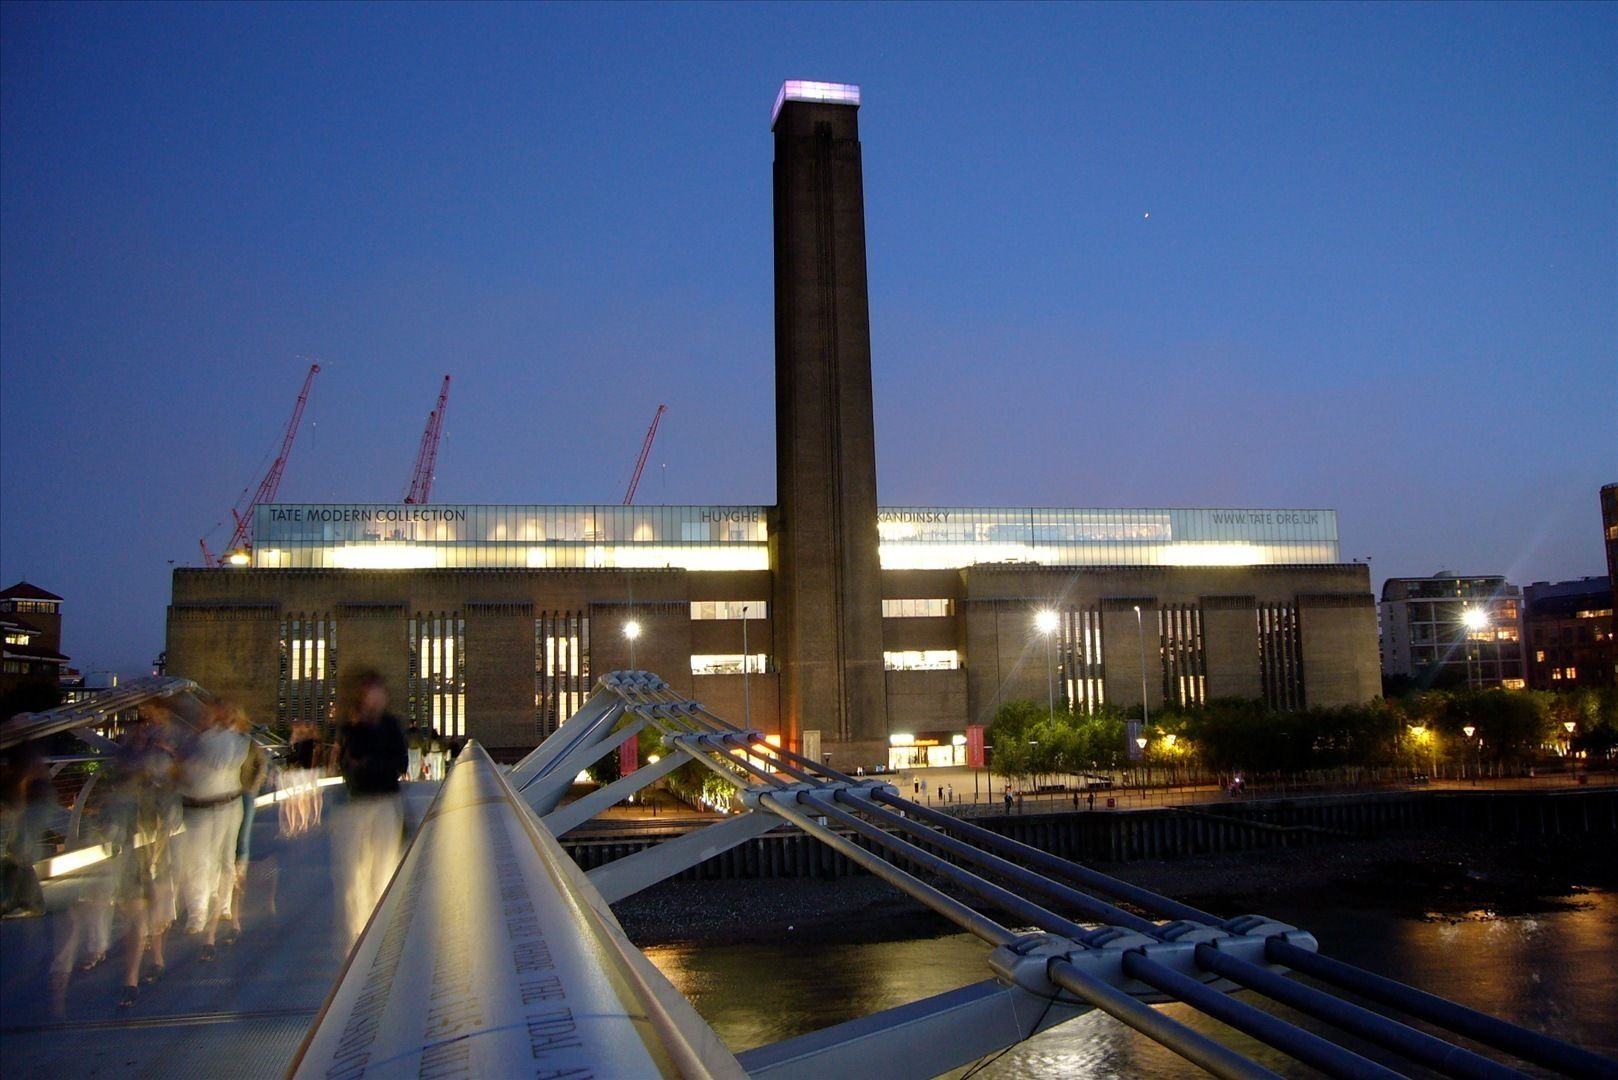 The Most Visited Modern Art Museum In The World Inaugurated The London Architecture Of A New Century In 2 Tate Modern Museum Tate Modern Gallery Of Modern Art